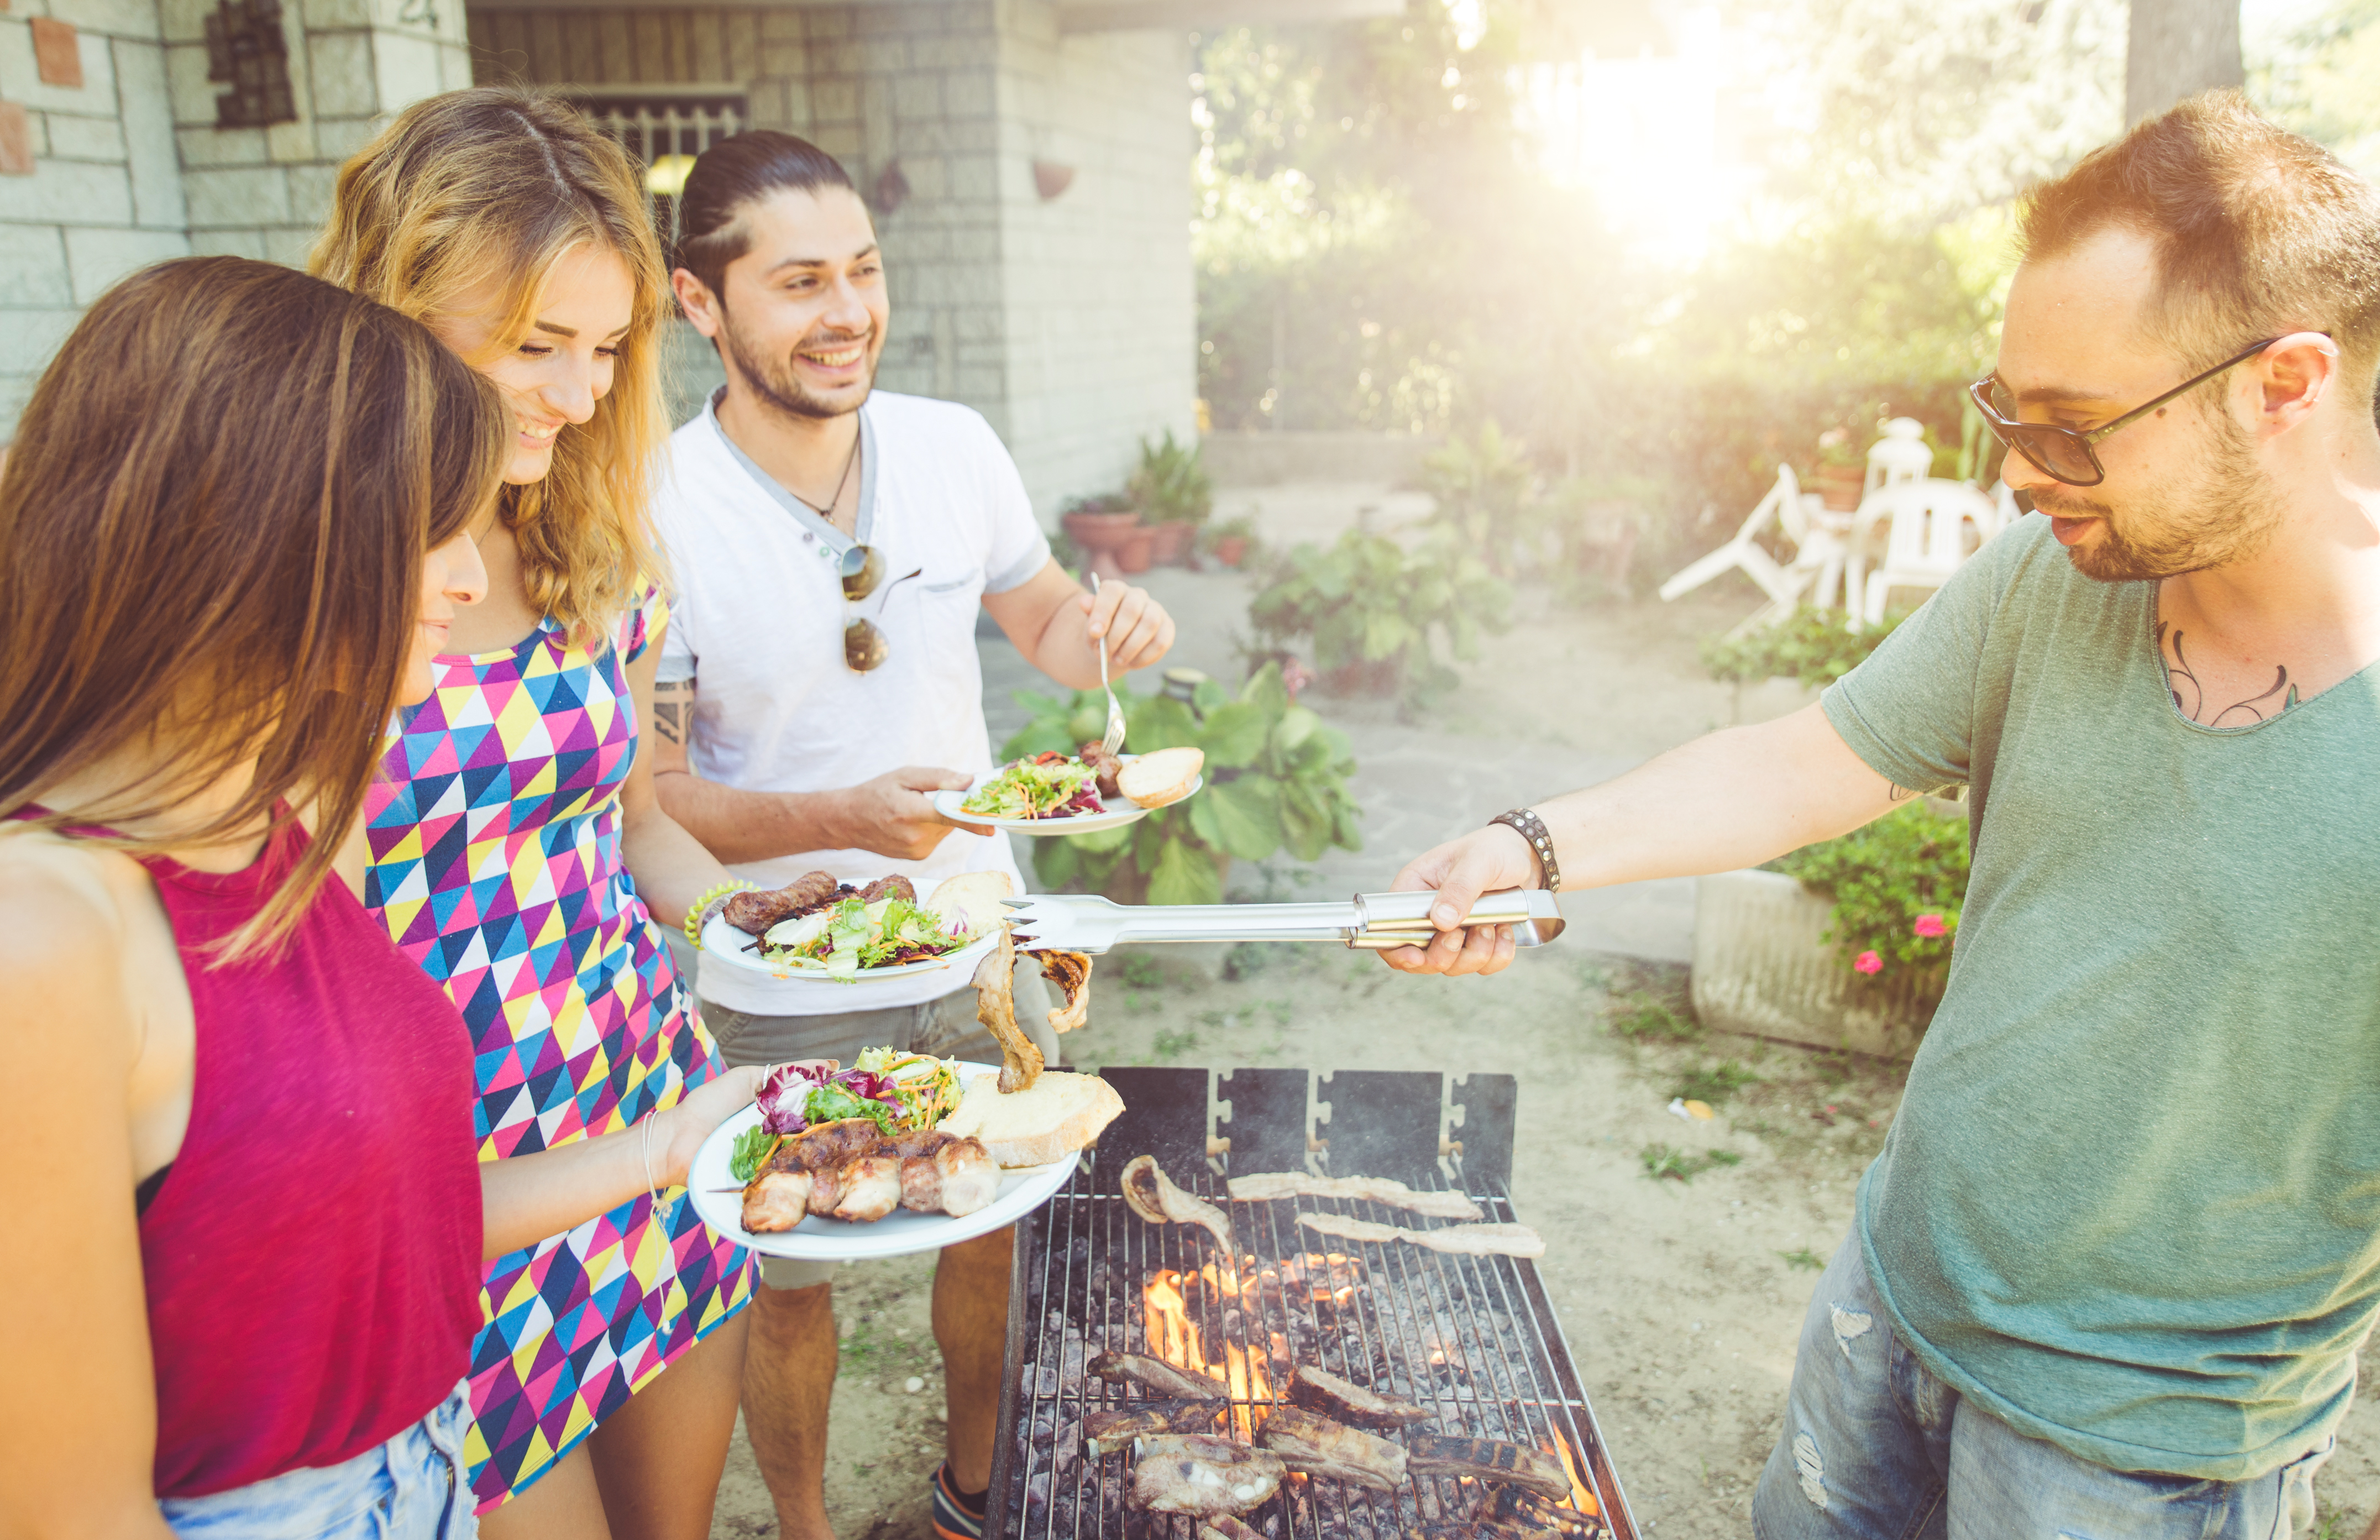 A Brief History of the Backyard BBQ